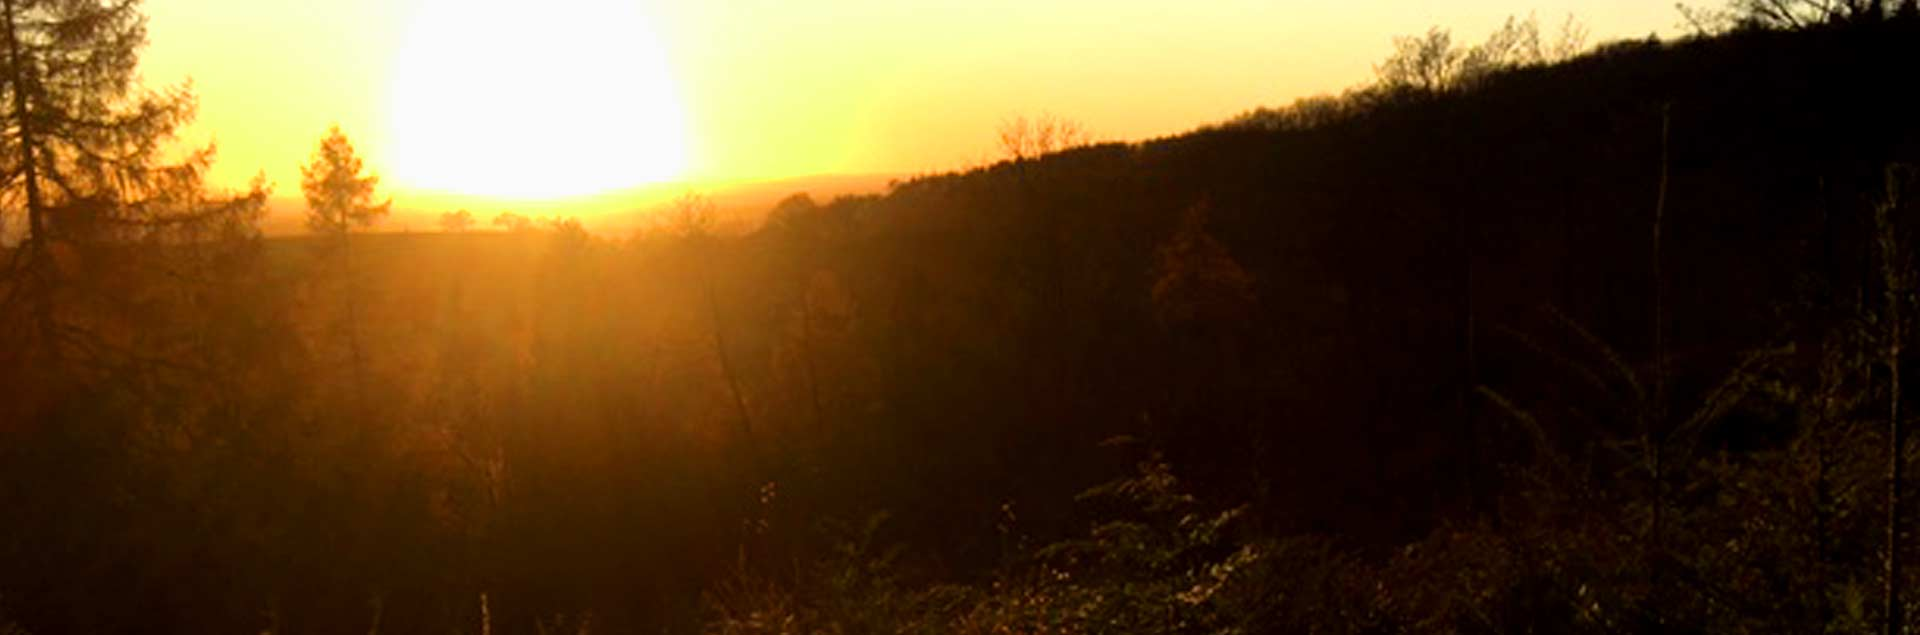 Photo of sun setting upon the forest at Sutton Bank after a good day of Brushcutting by the Metcalfe team